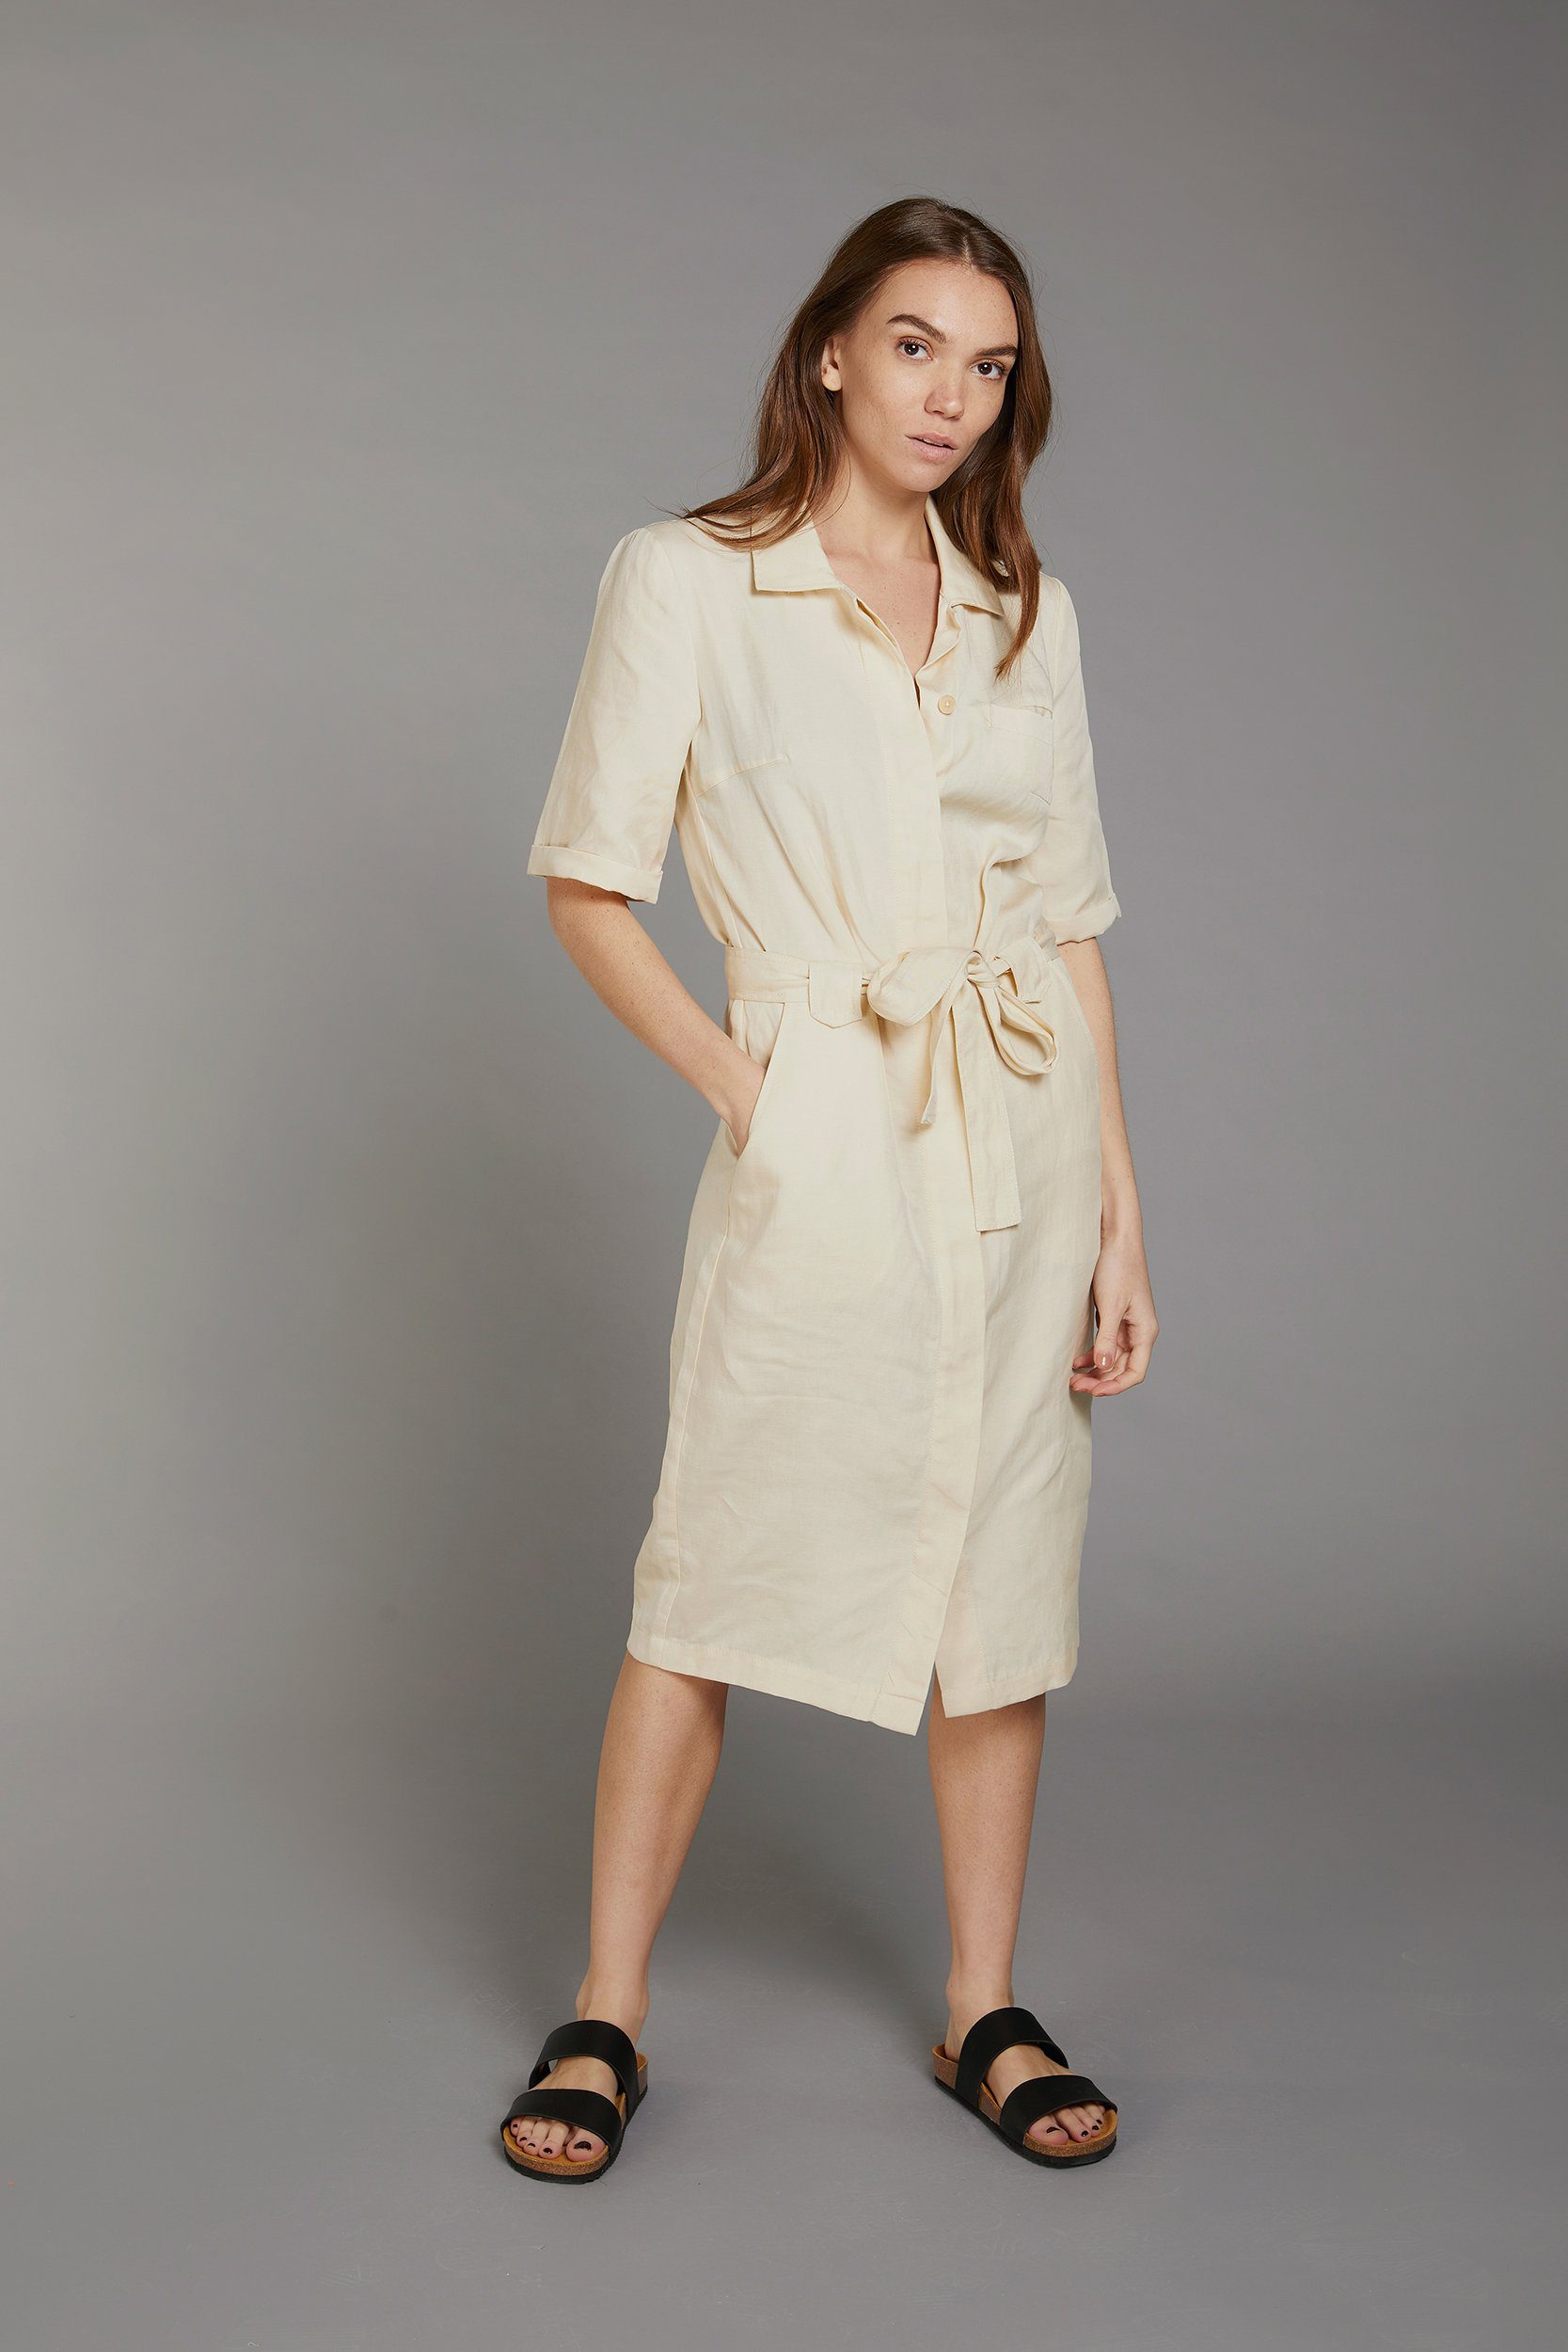 LINLIN Tencel Linen Shirt Dress Warm Sand - Komodo Fashion